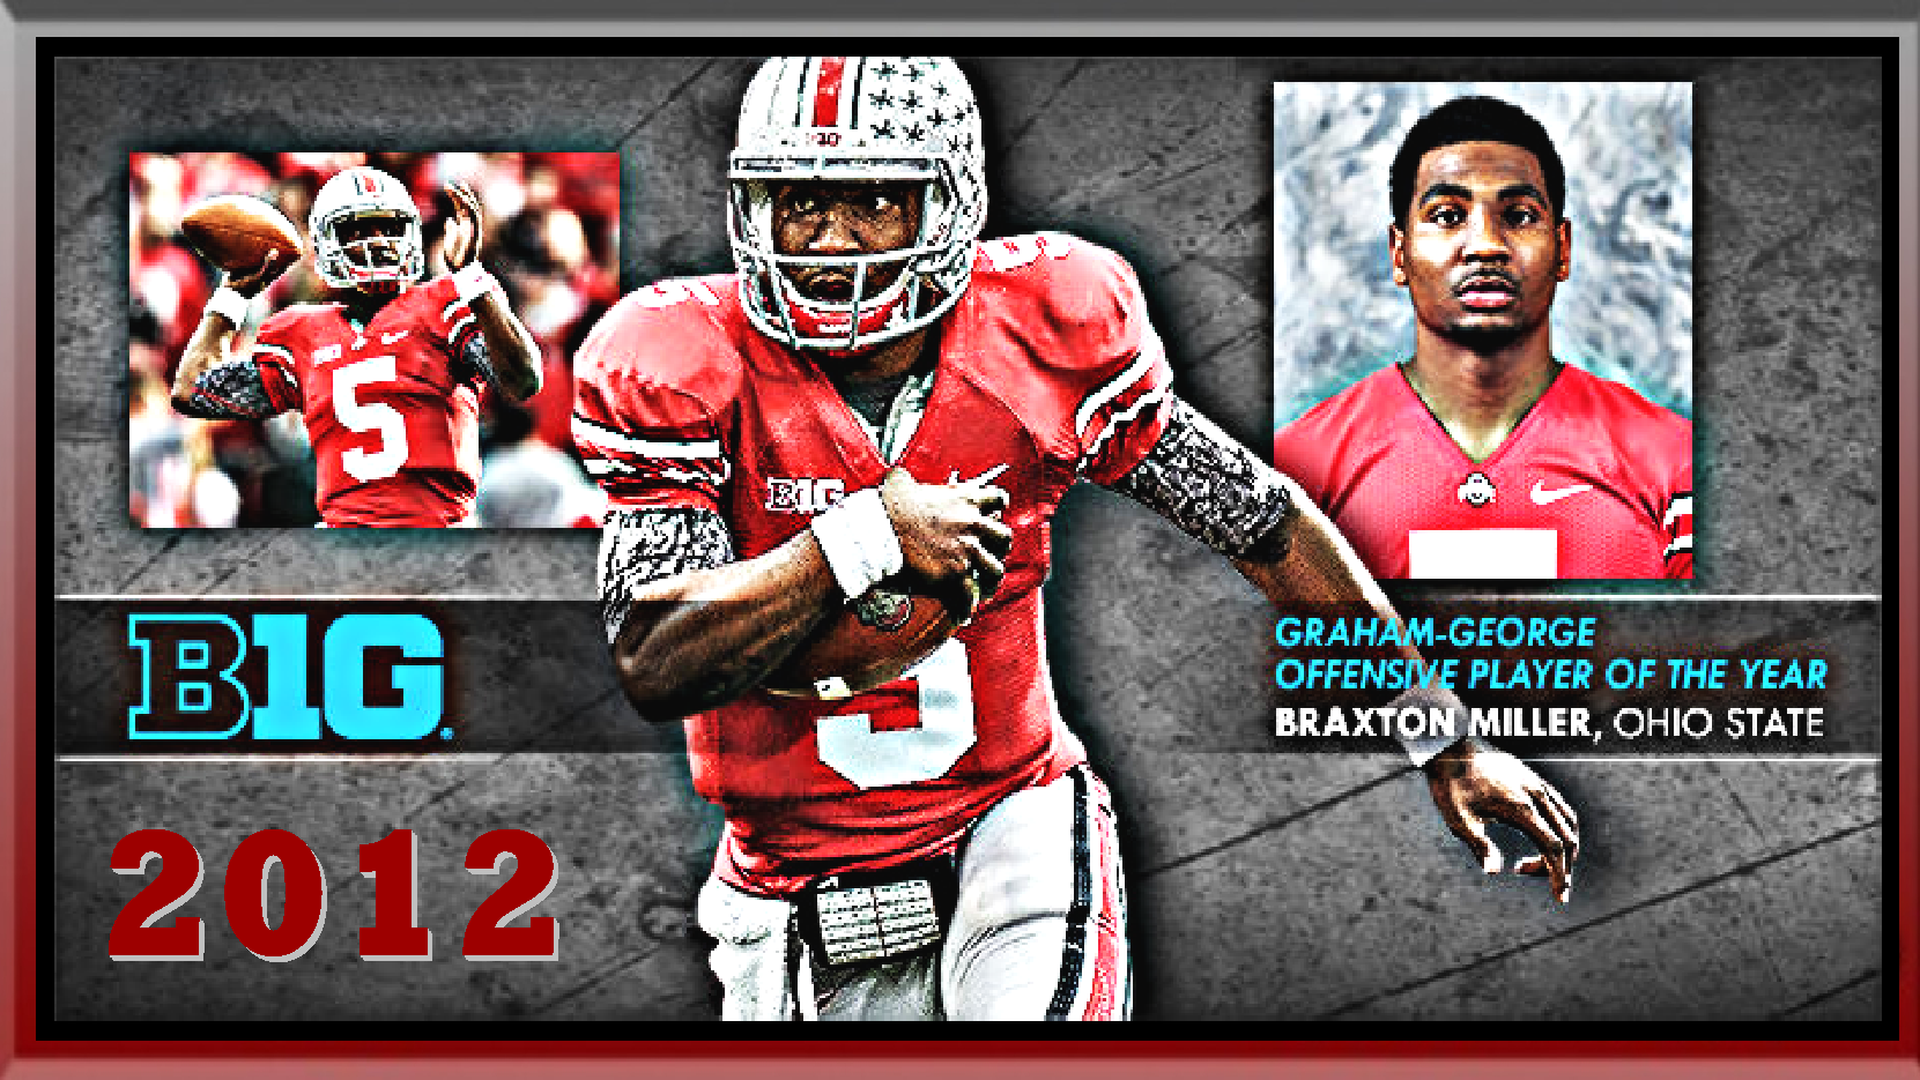 http://images6.fanpop.com/image/photos/32800000/BRAXTON-MILLER-2012-B1G-OFFENSIVE-PLAYER-OF-THE-YEAR-ohio-state-football-32884861-1920-1080.png